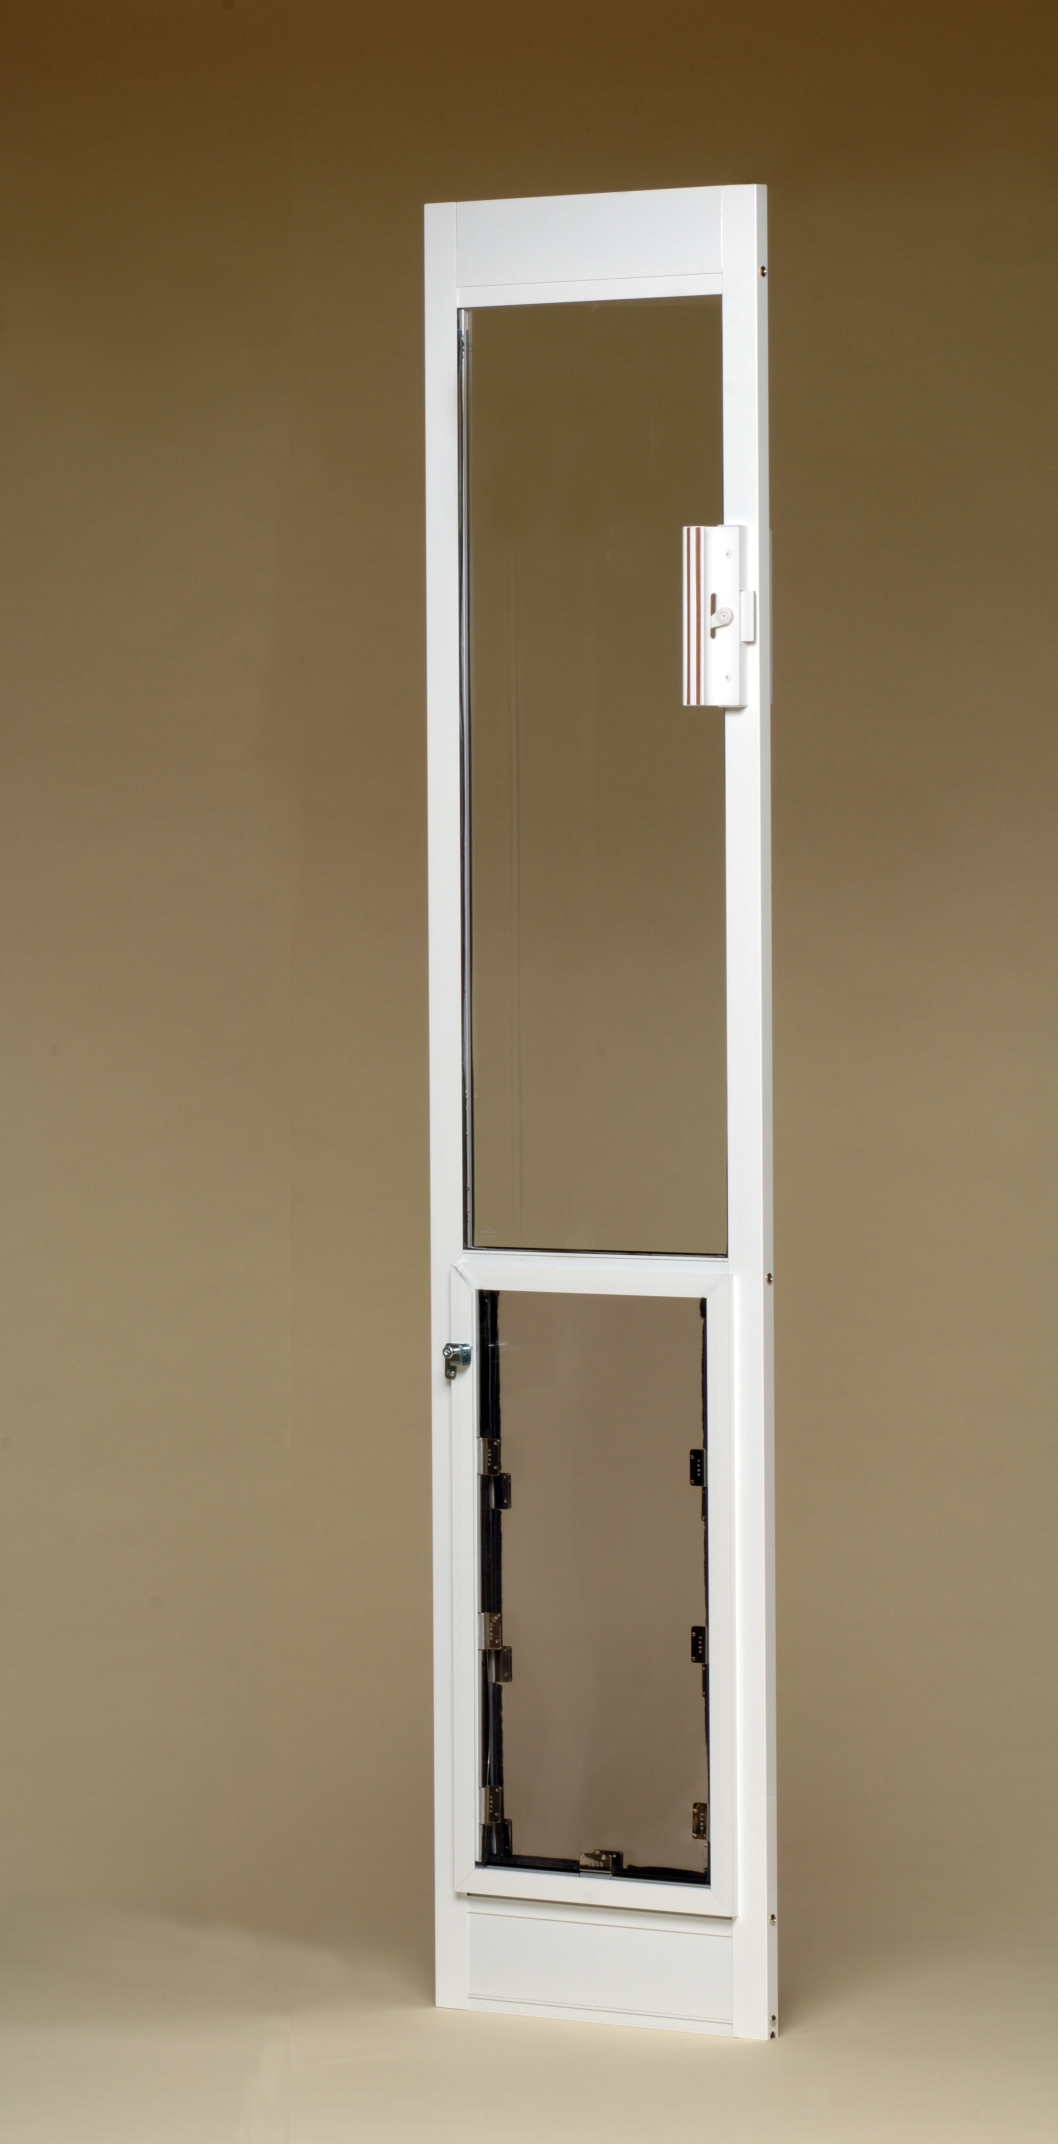 Hale Pet Door Installation Instructions